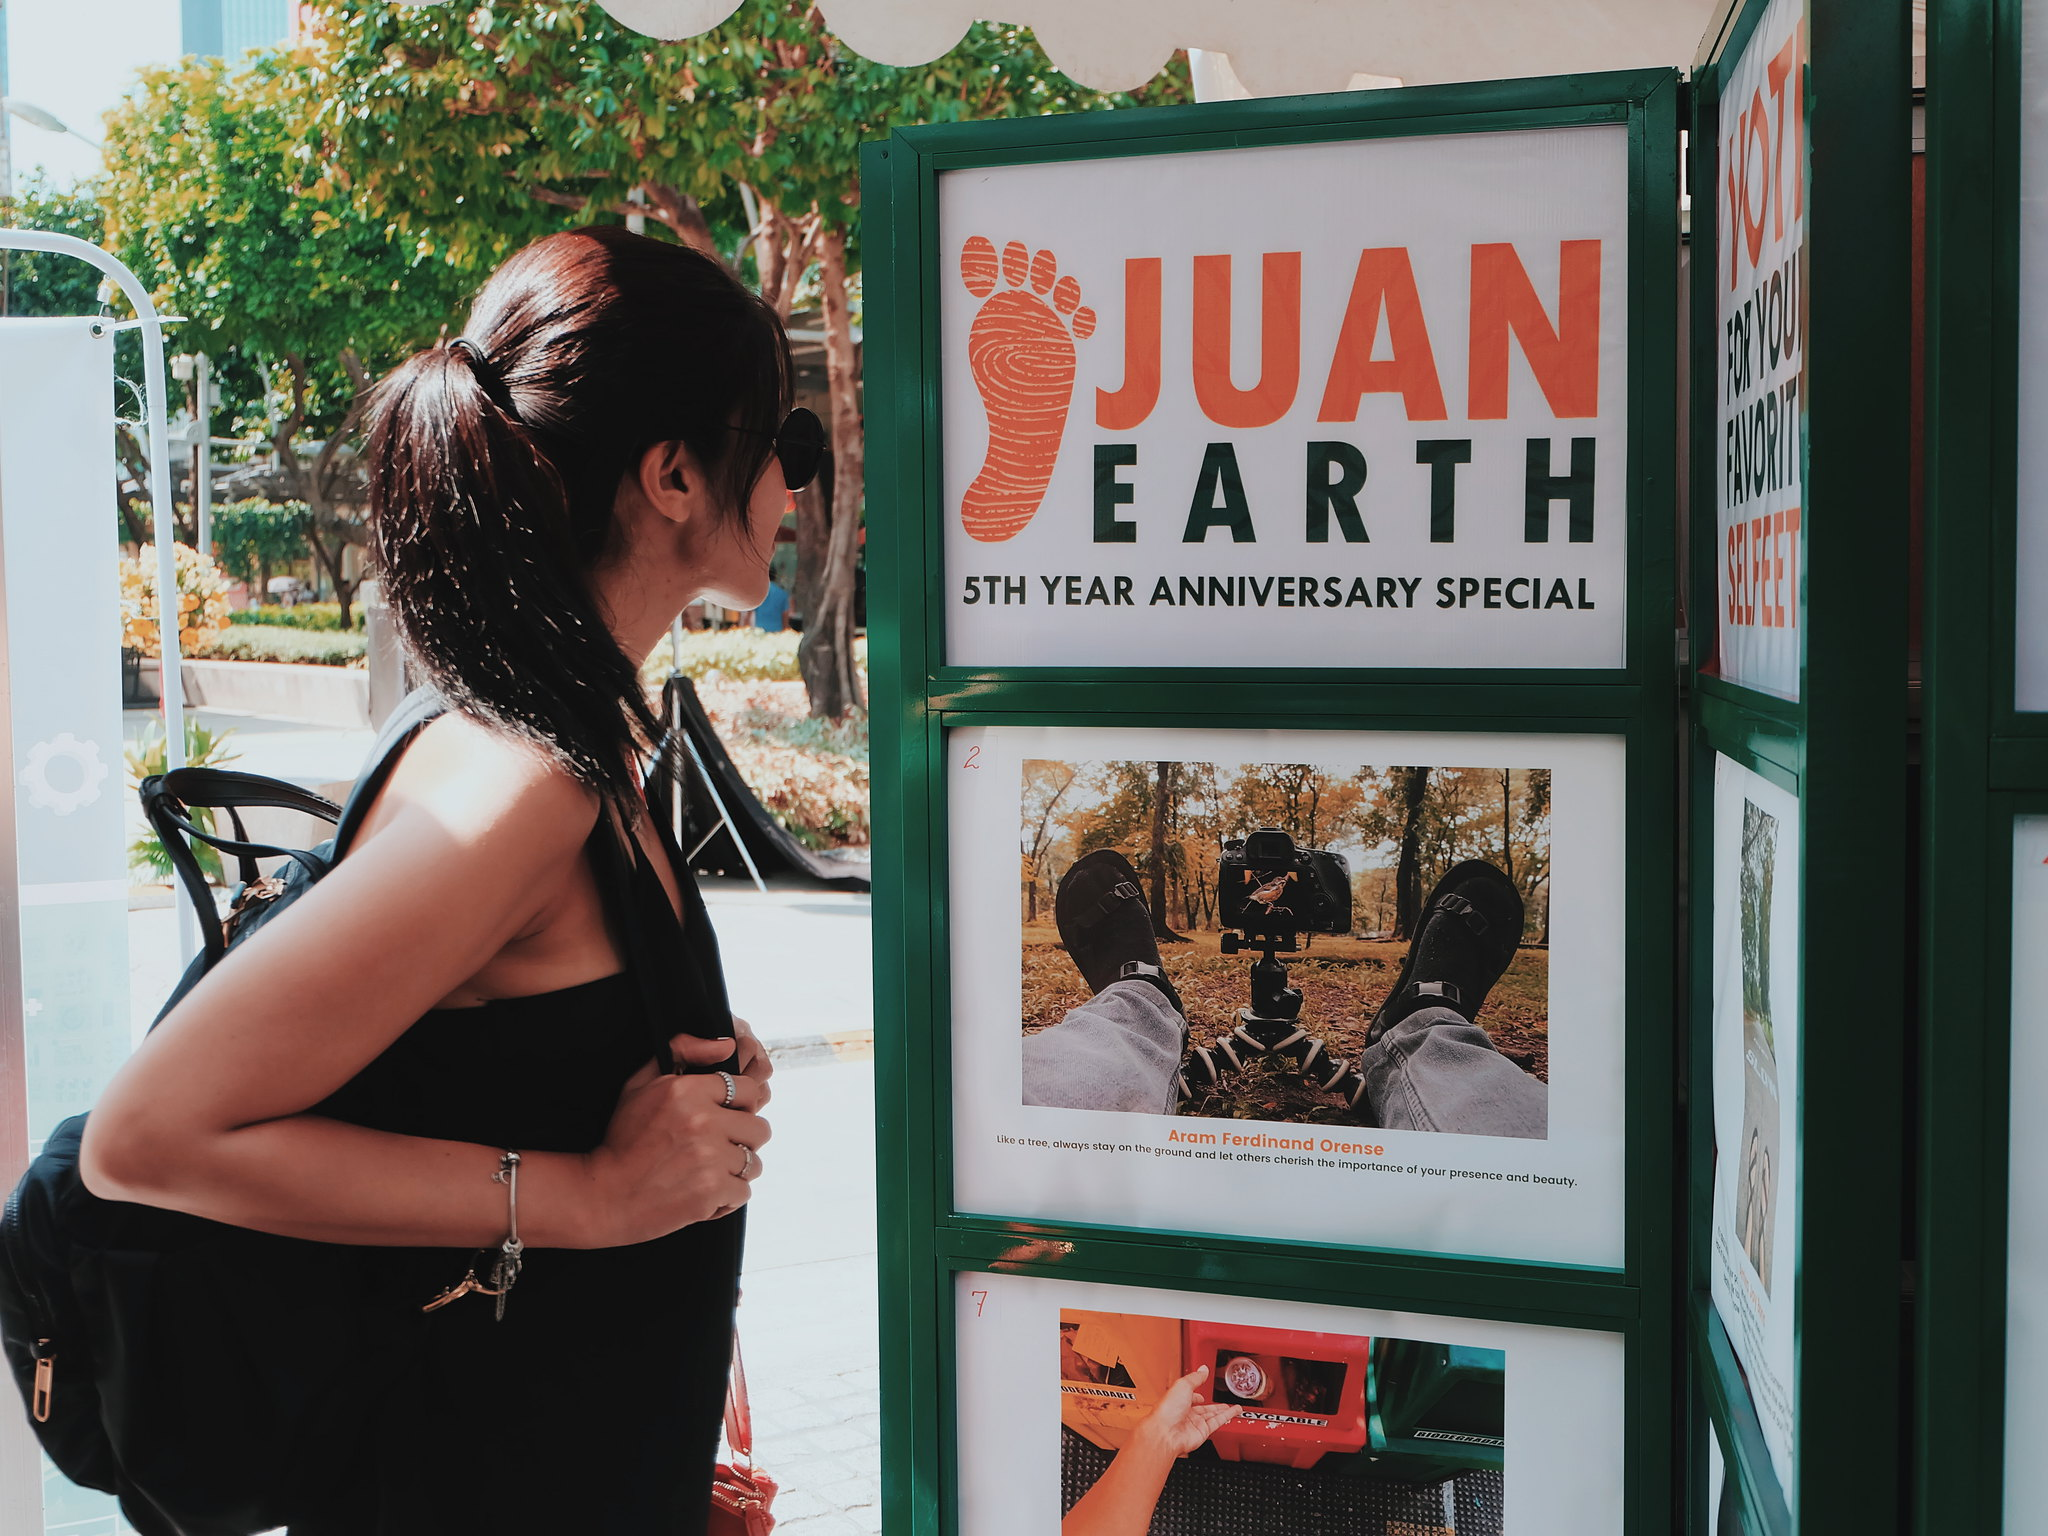 Juan Earth Event 5th Anniversary Celebration